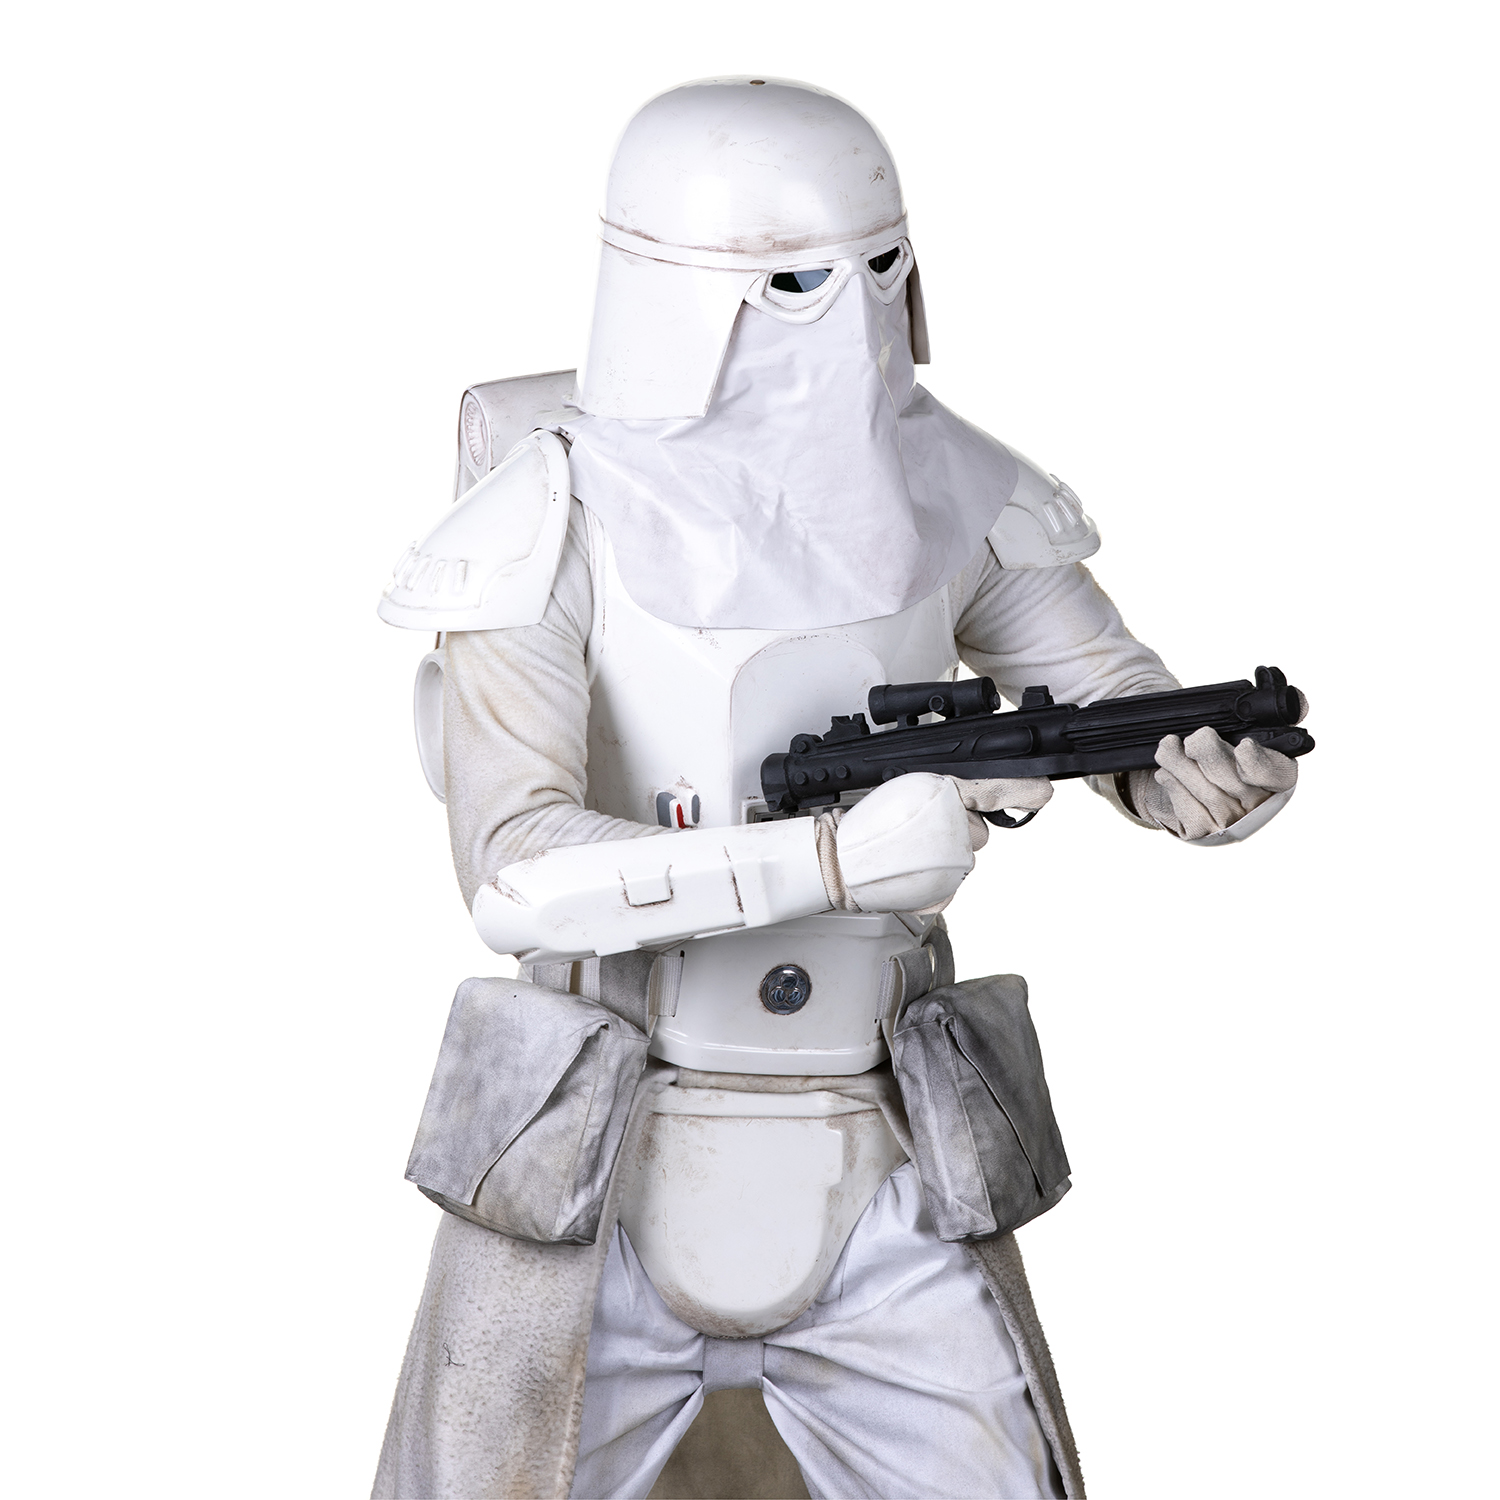 Snowtrooper Full Commission Build | RS Propmasters